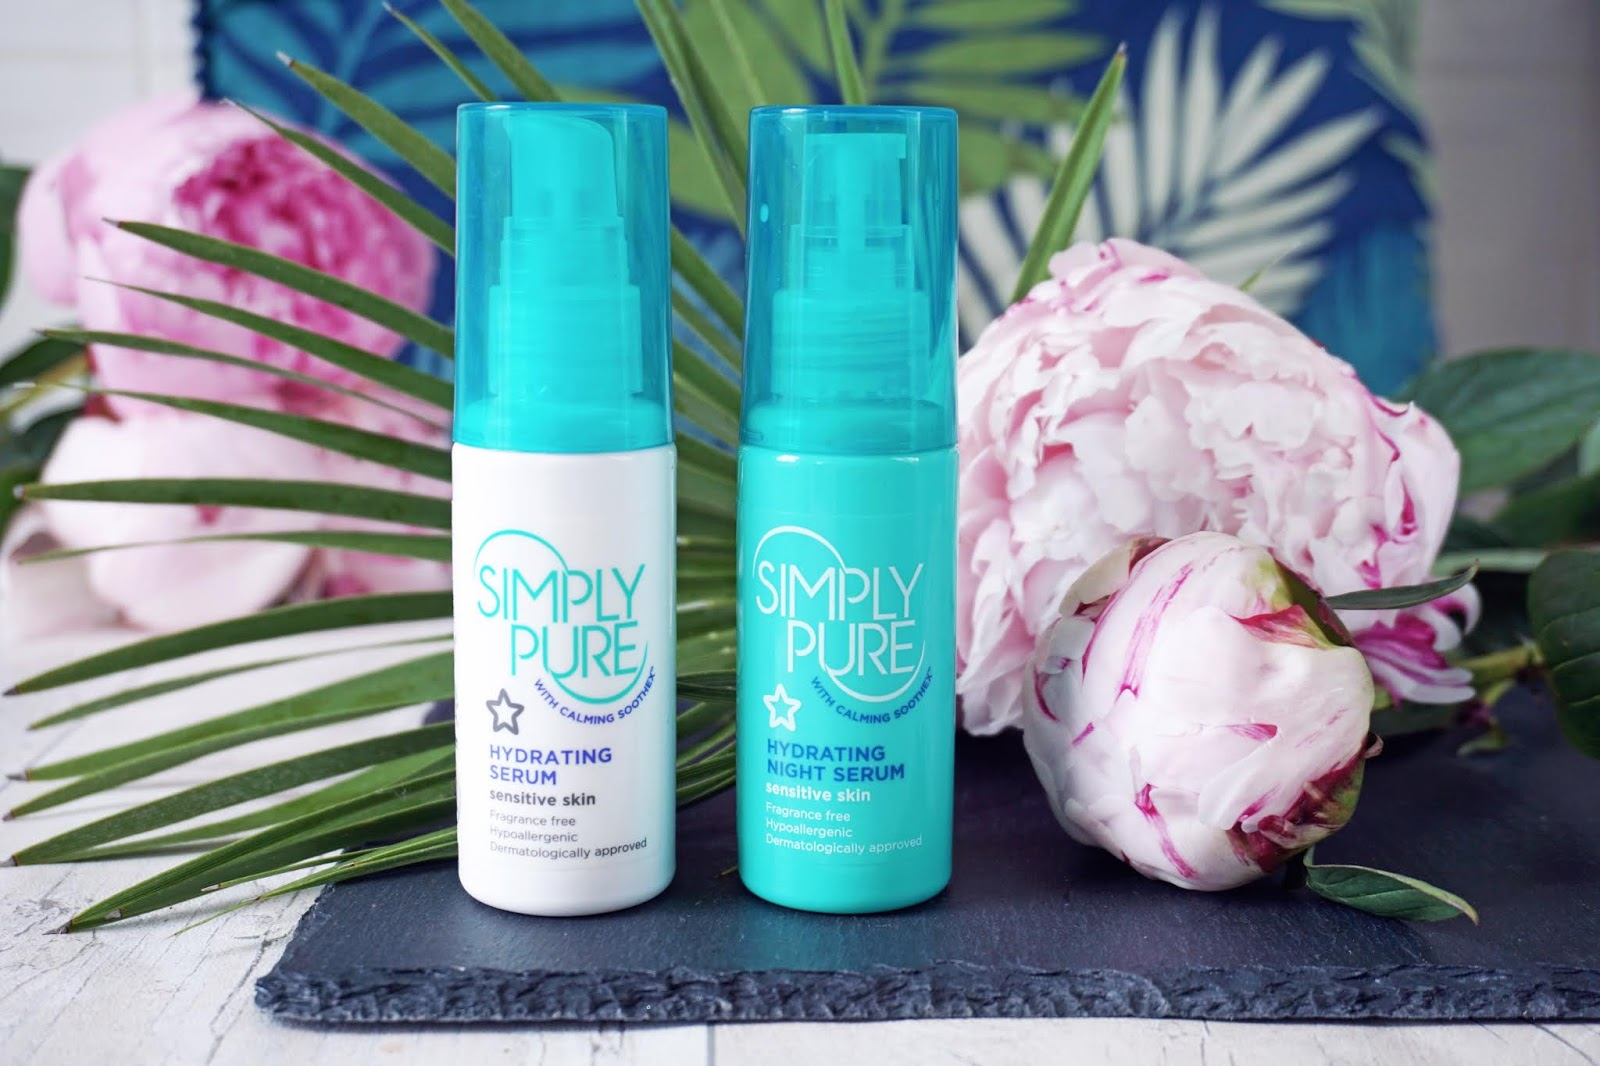 Superdrug simply pure hydrating serums